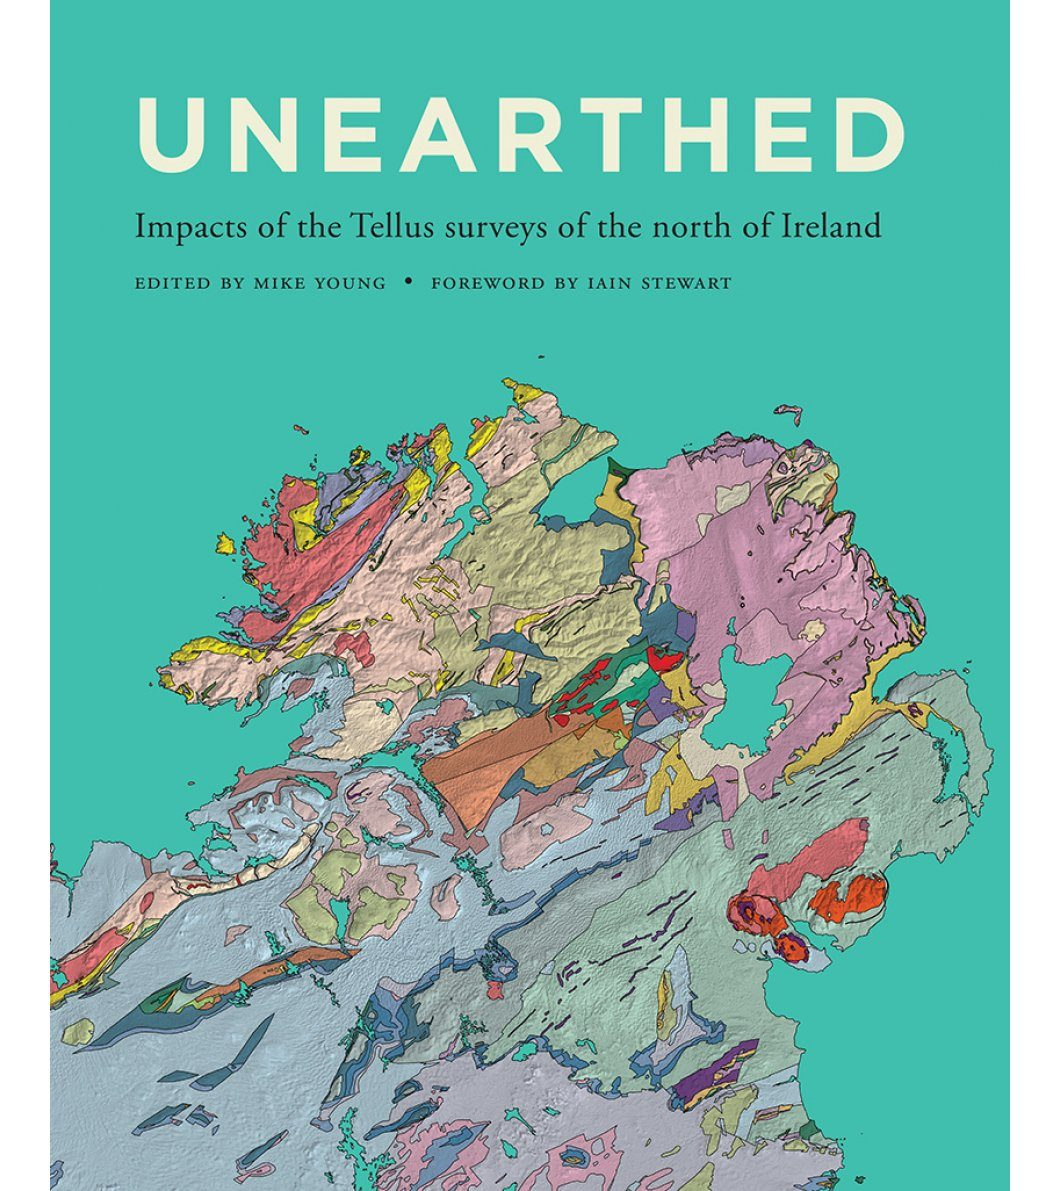 Unearthed: Impacts of the Tellus Surveys of the North of Ireland